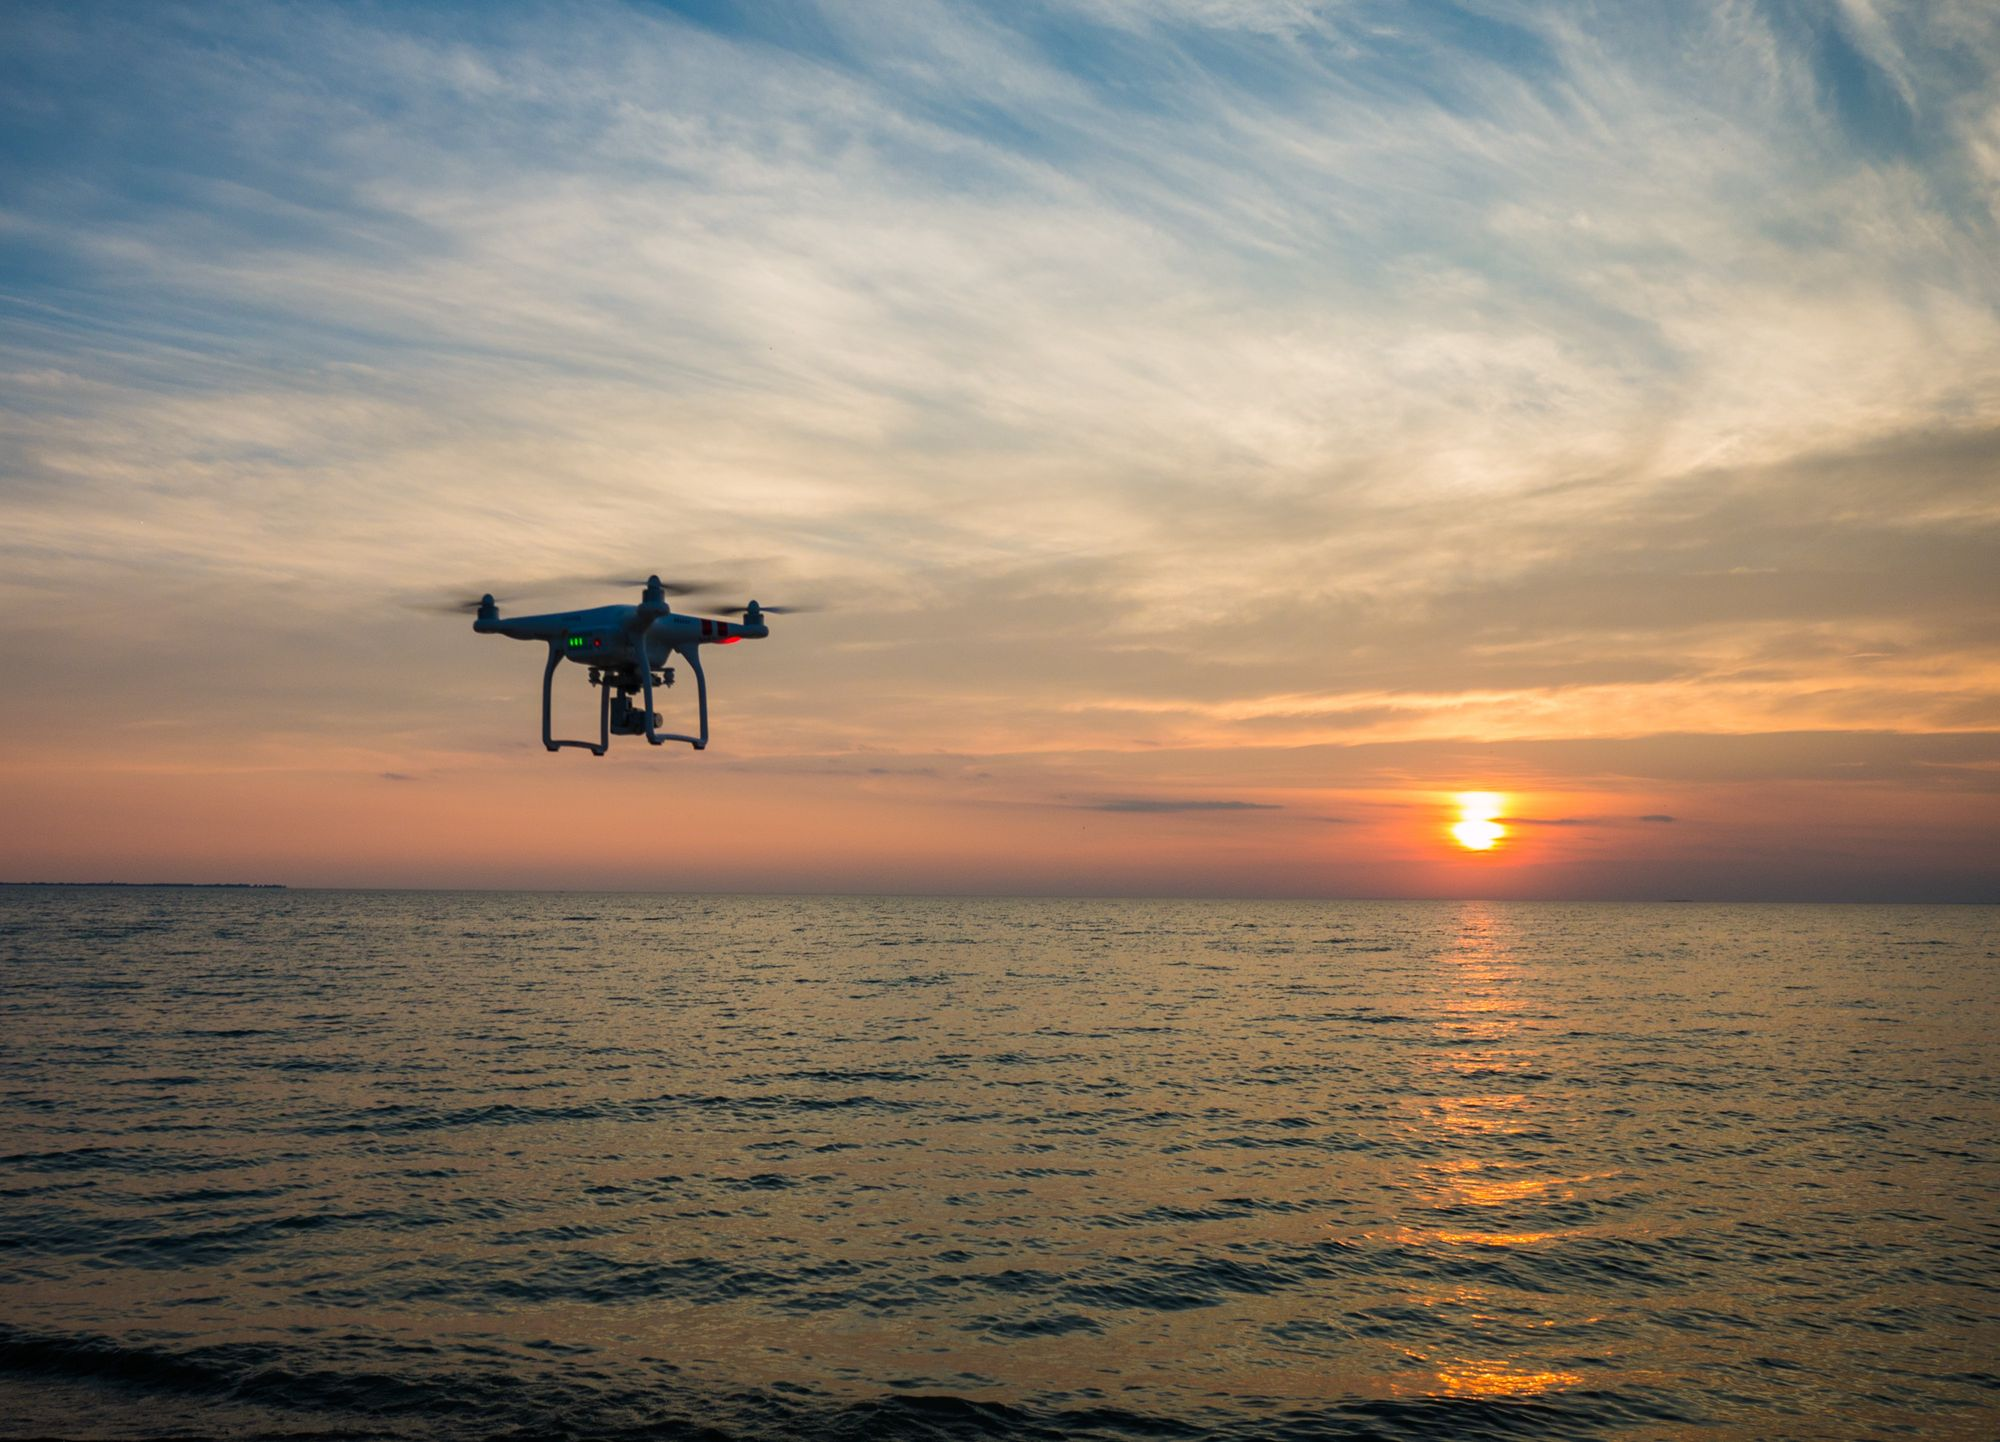 5 Lessons To Take Note Before You Start Flying Your DJI Drone For The Very First Time—Solutions